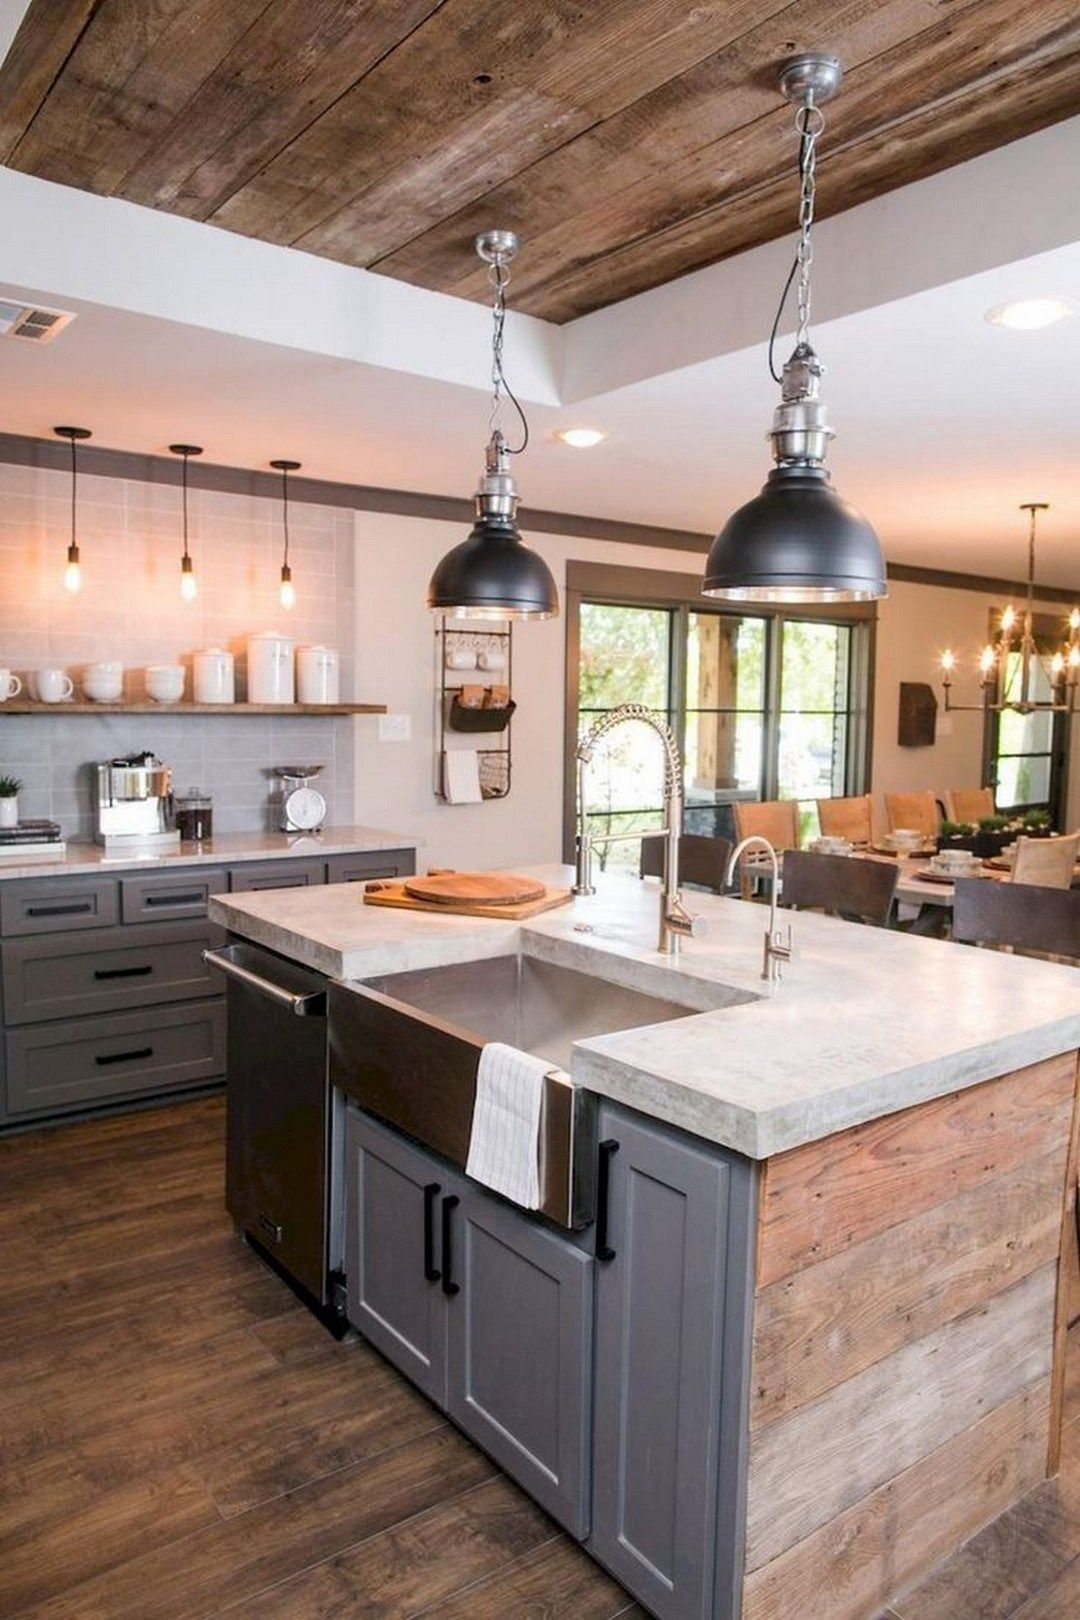 81 Rustic Kitchen With Shiplap From Home Depot Farmhouse